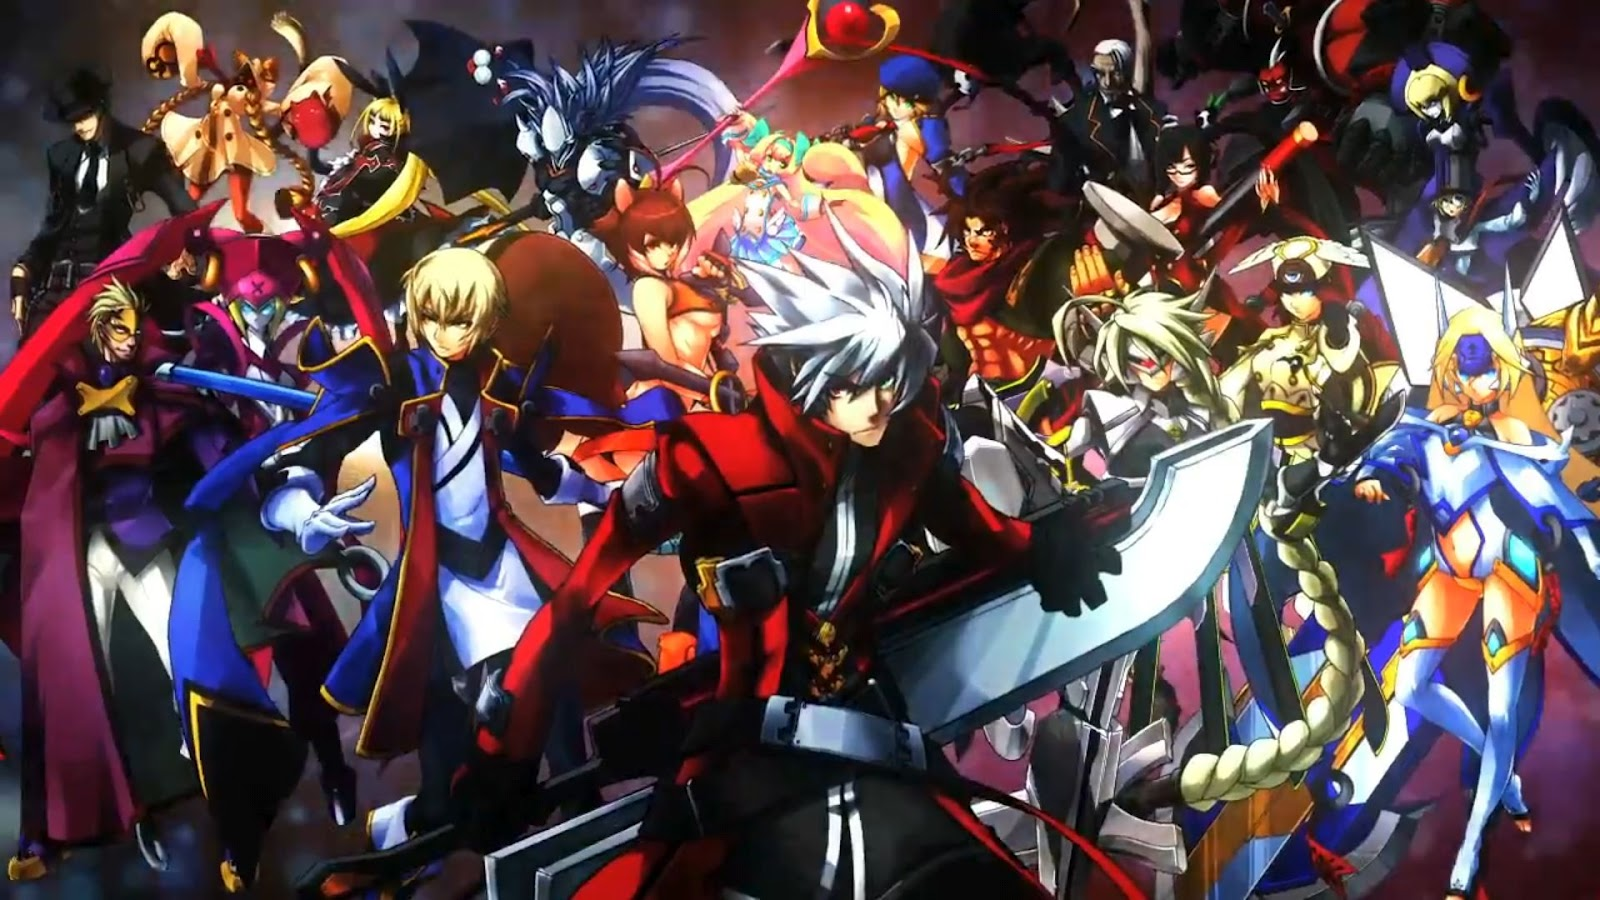 Blazblue Wallpapers 1663781 Hd Wallpaper Backgrounds Download